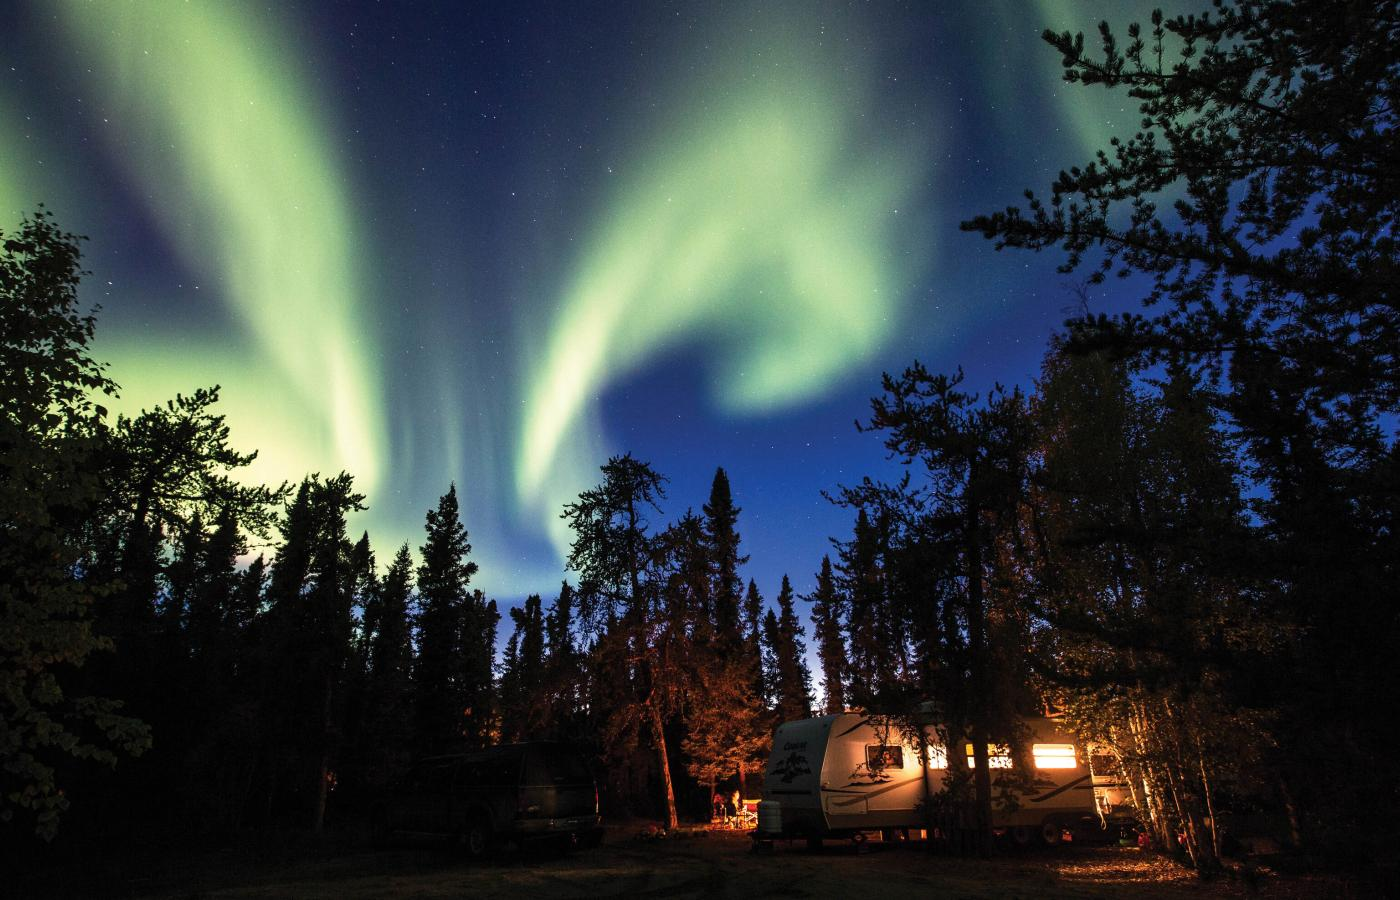 The Aurora fills the sky over an RV parked in a campground in the Northwest Territories